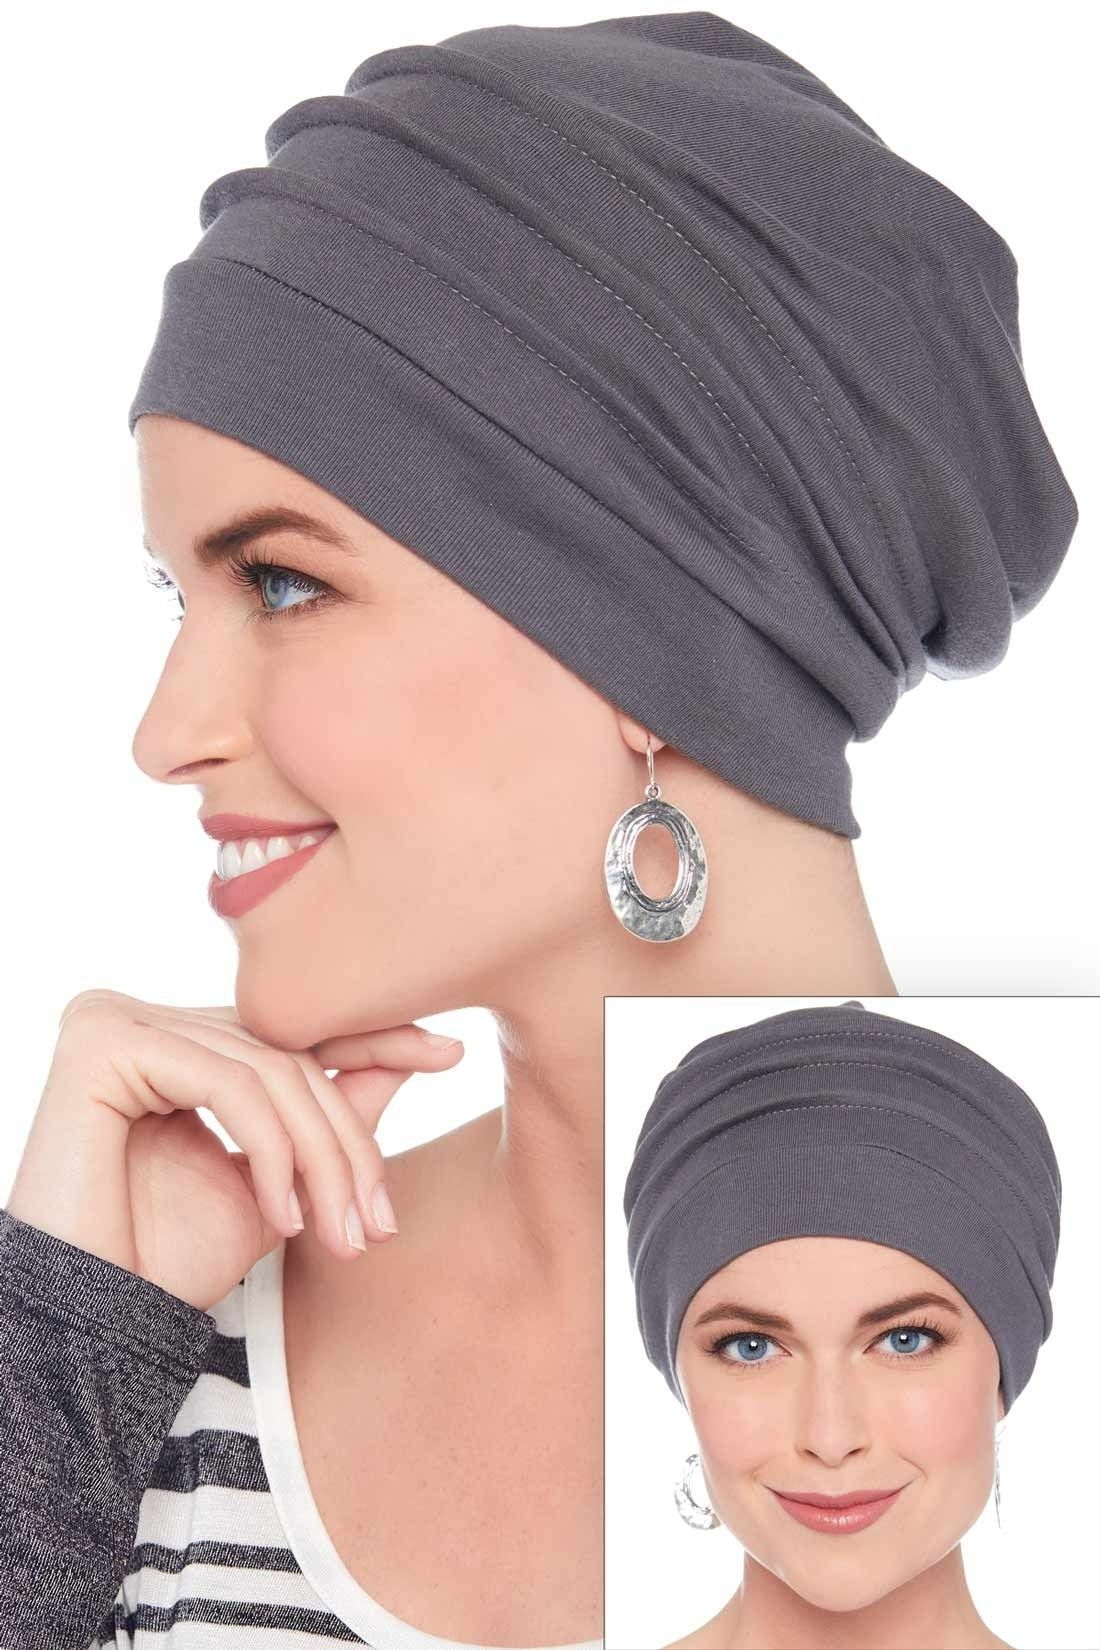 a779296f52d9 Slouchy Snood Hat   100% Cotton Slouchy Beanie Hats for Women. This is THE  BEST chemo cap. It s super stylish, incredibly versatile, and comfy!